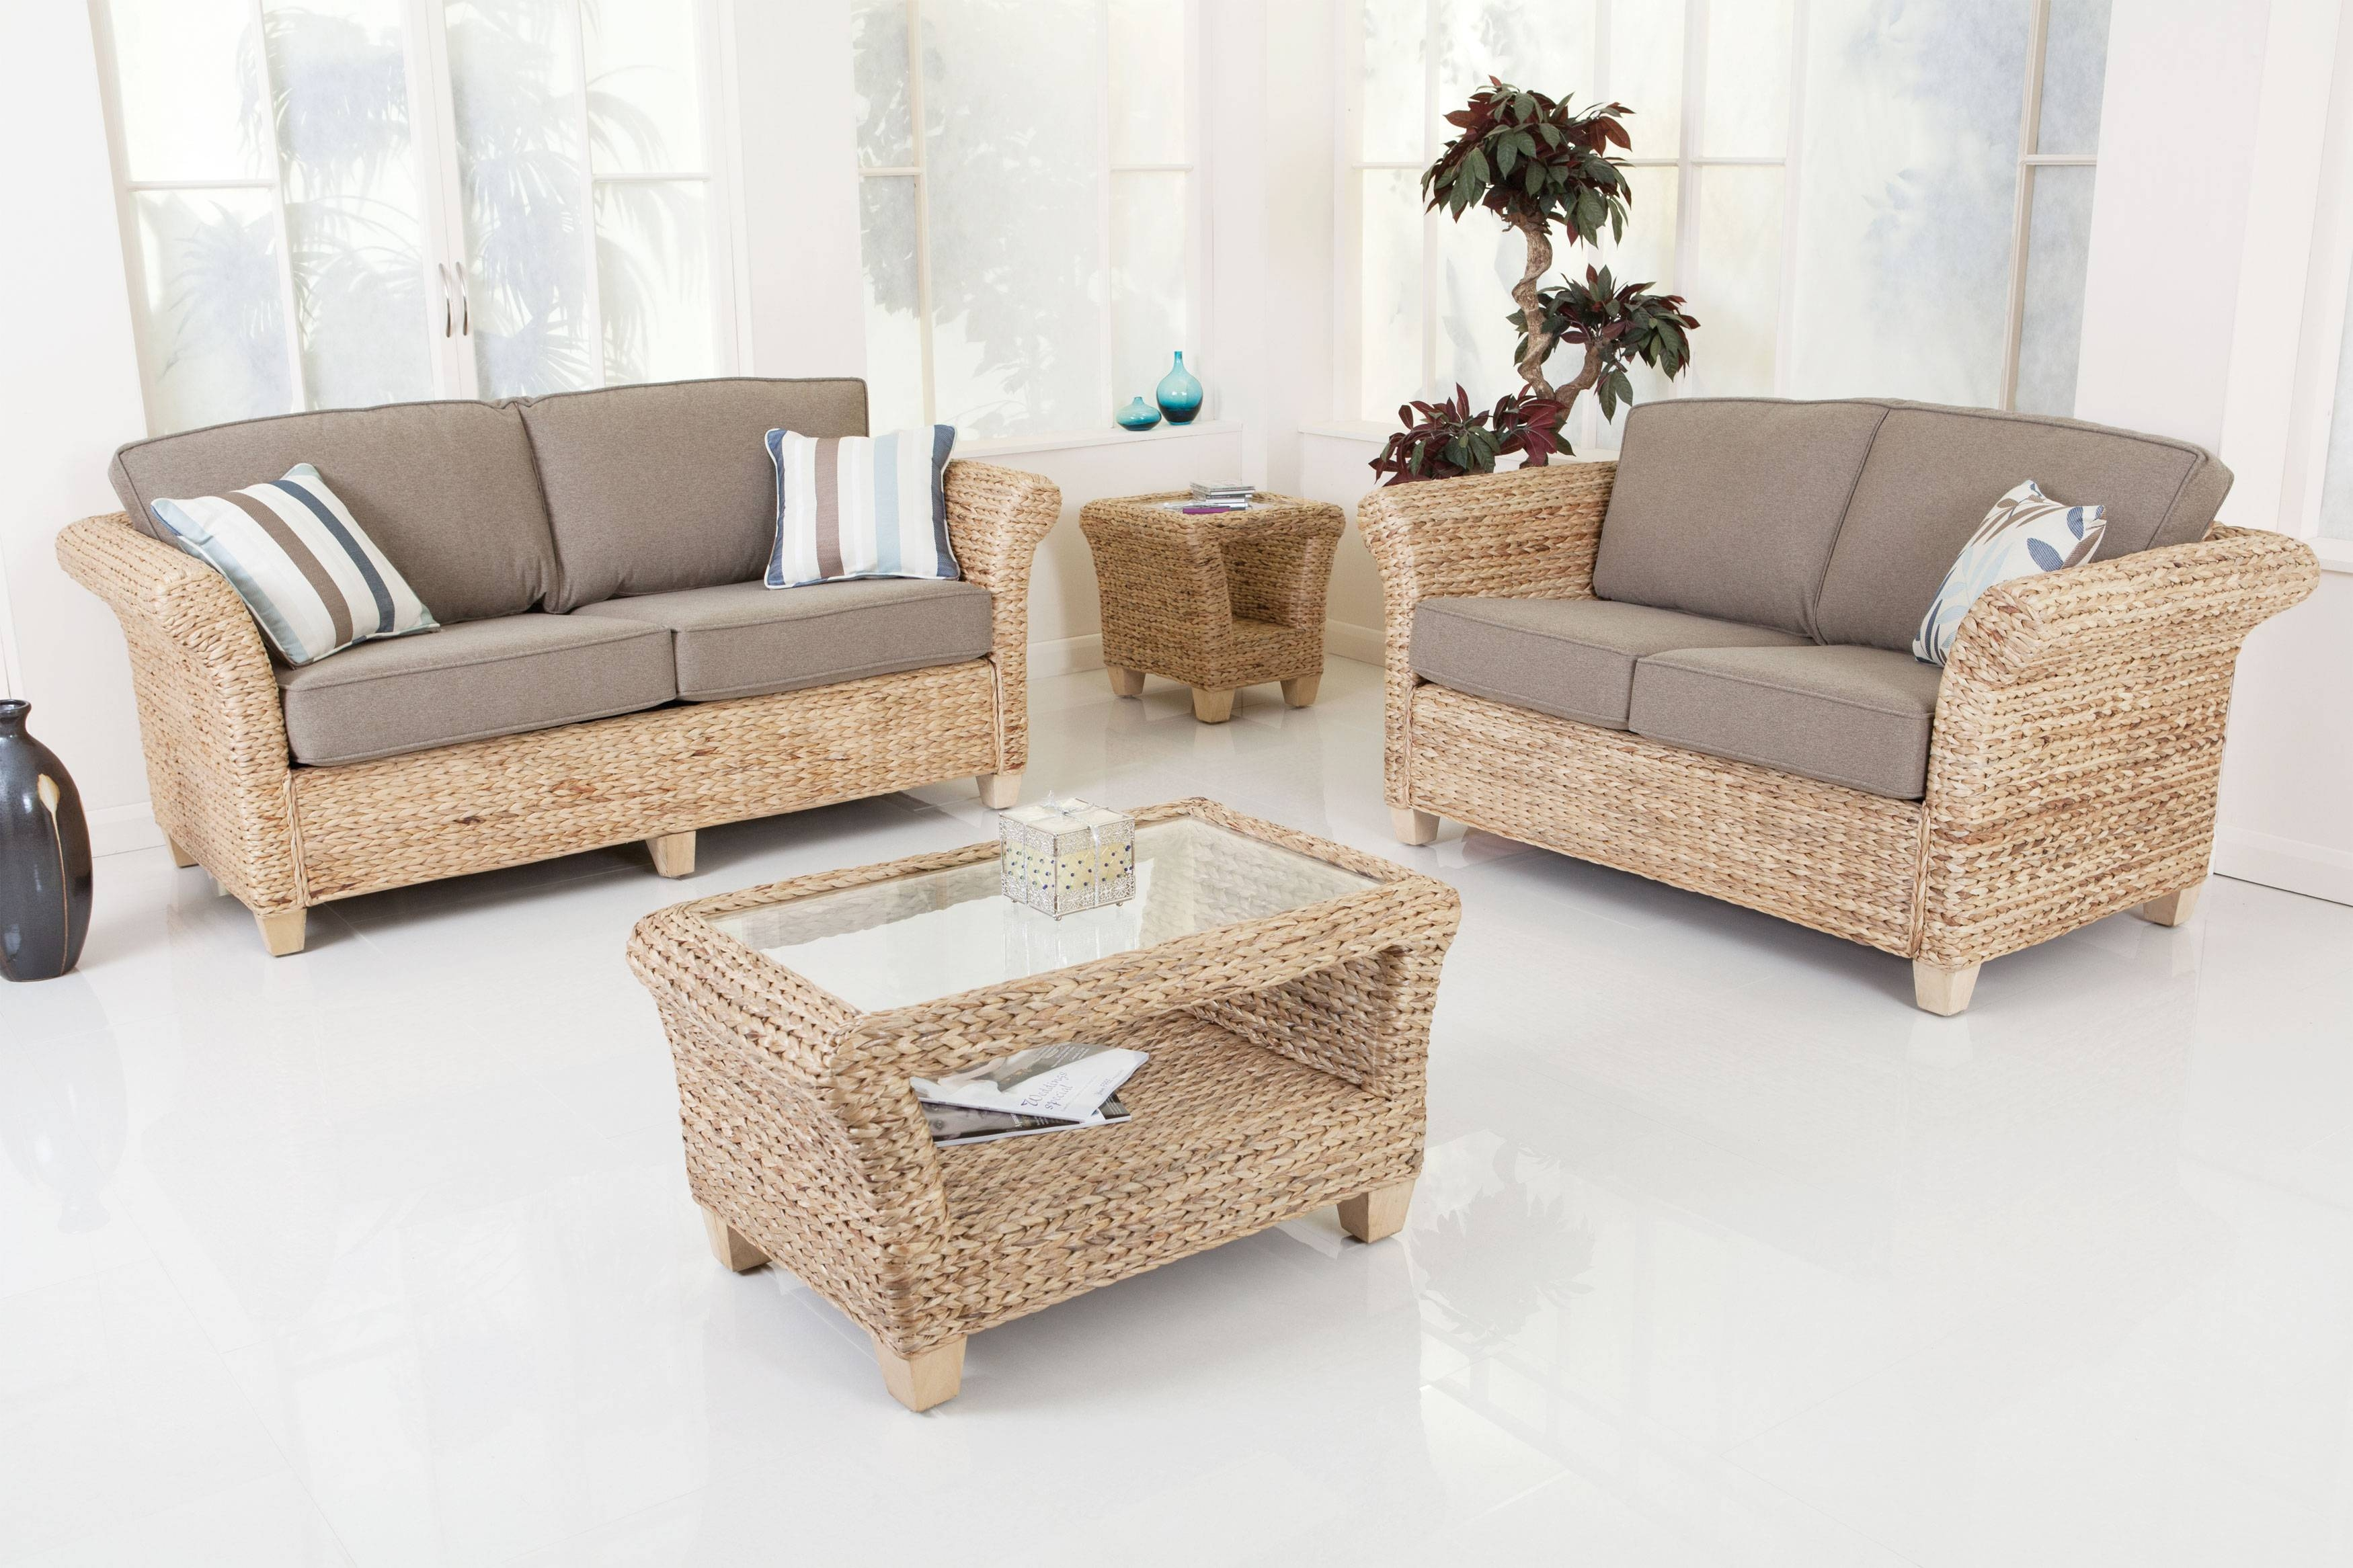 Welcome To Nature Cane And Wood Furniture Works | Cane Furniture with regard to Bamboo Sofas (Image 15 of 15)